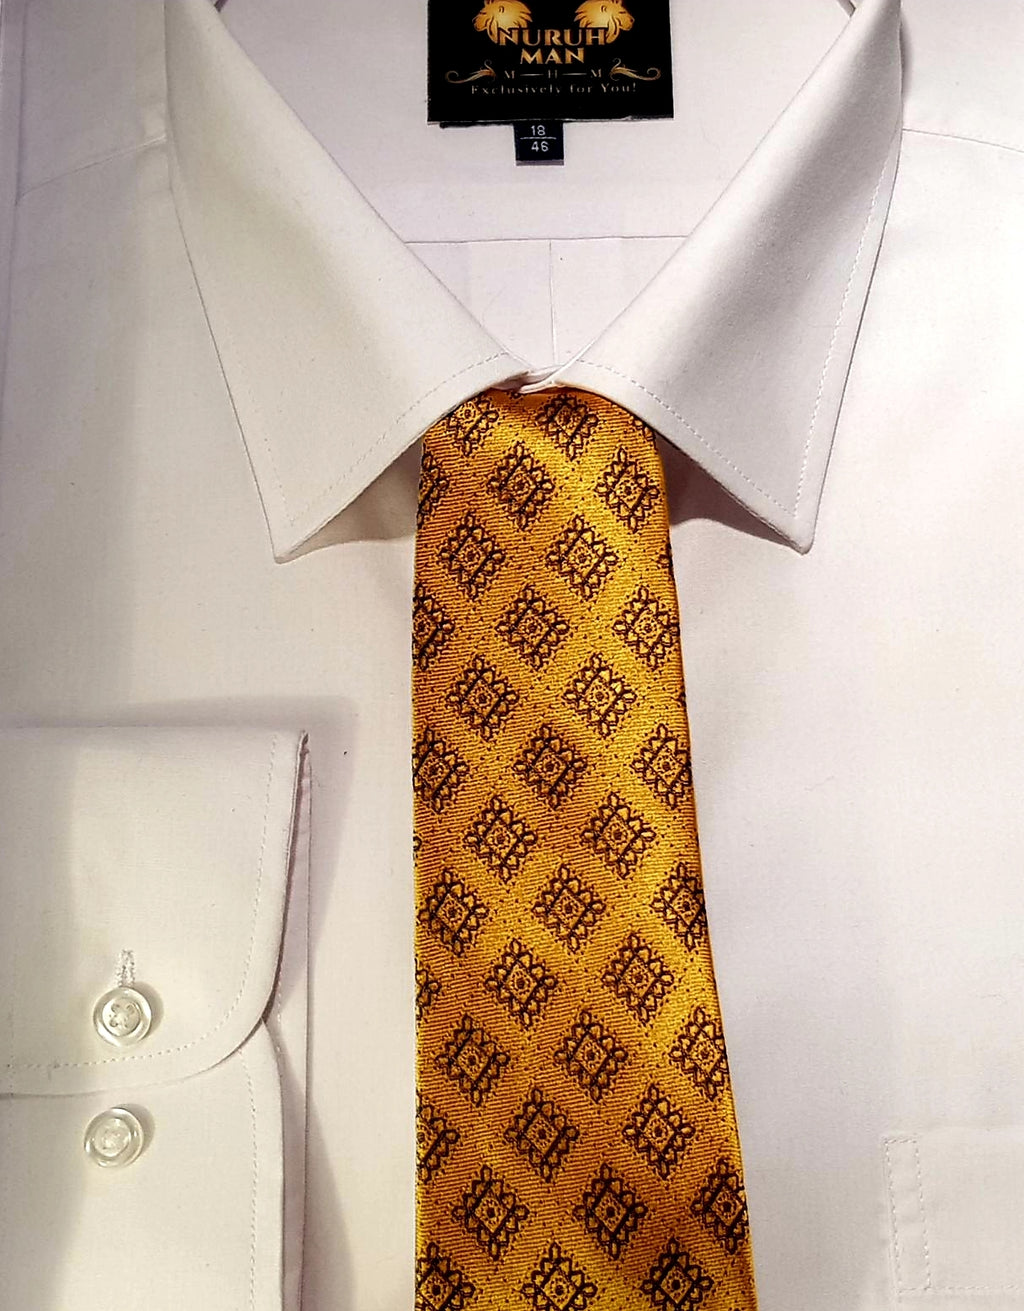 Bold Gold Patterned Men's Single Tie